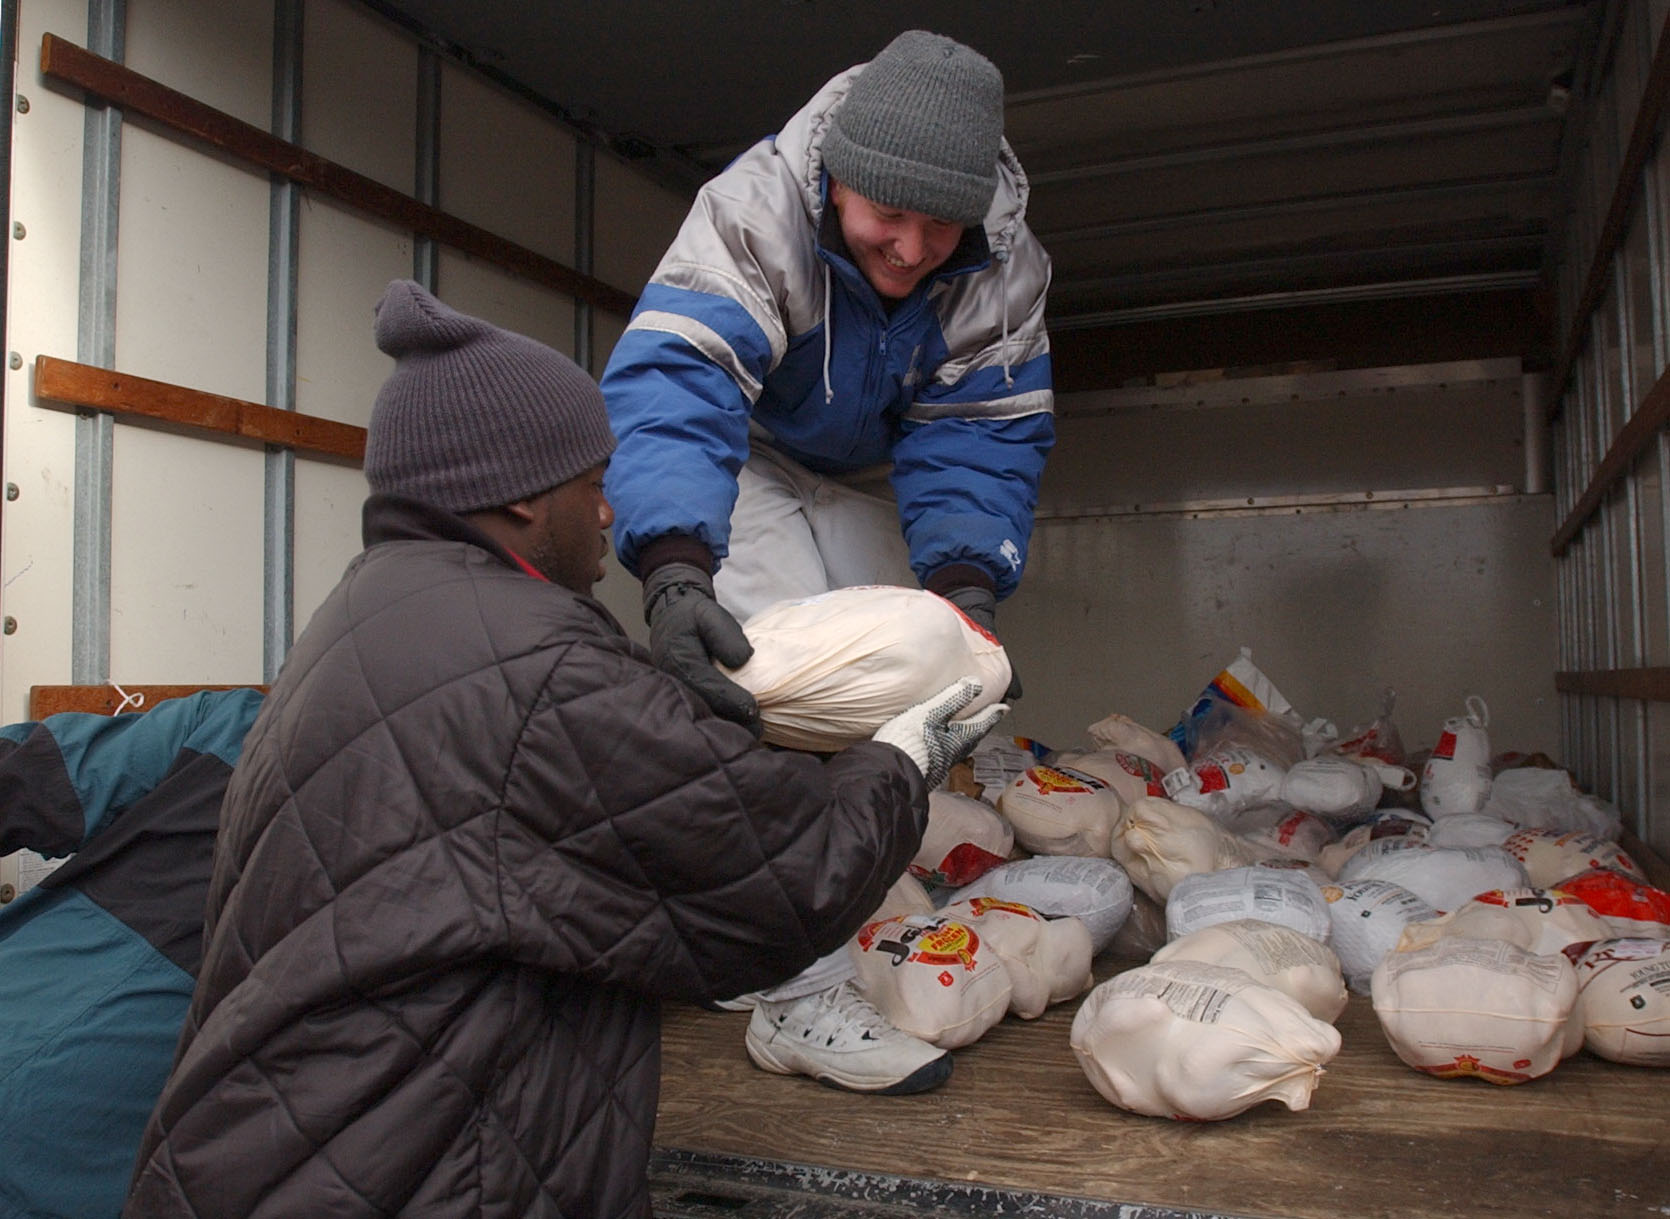 The Buffalo City Mission has kicked off its collection drive for turkeys for Thanksgiving. (Buffalo News file photo)